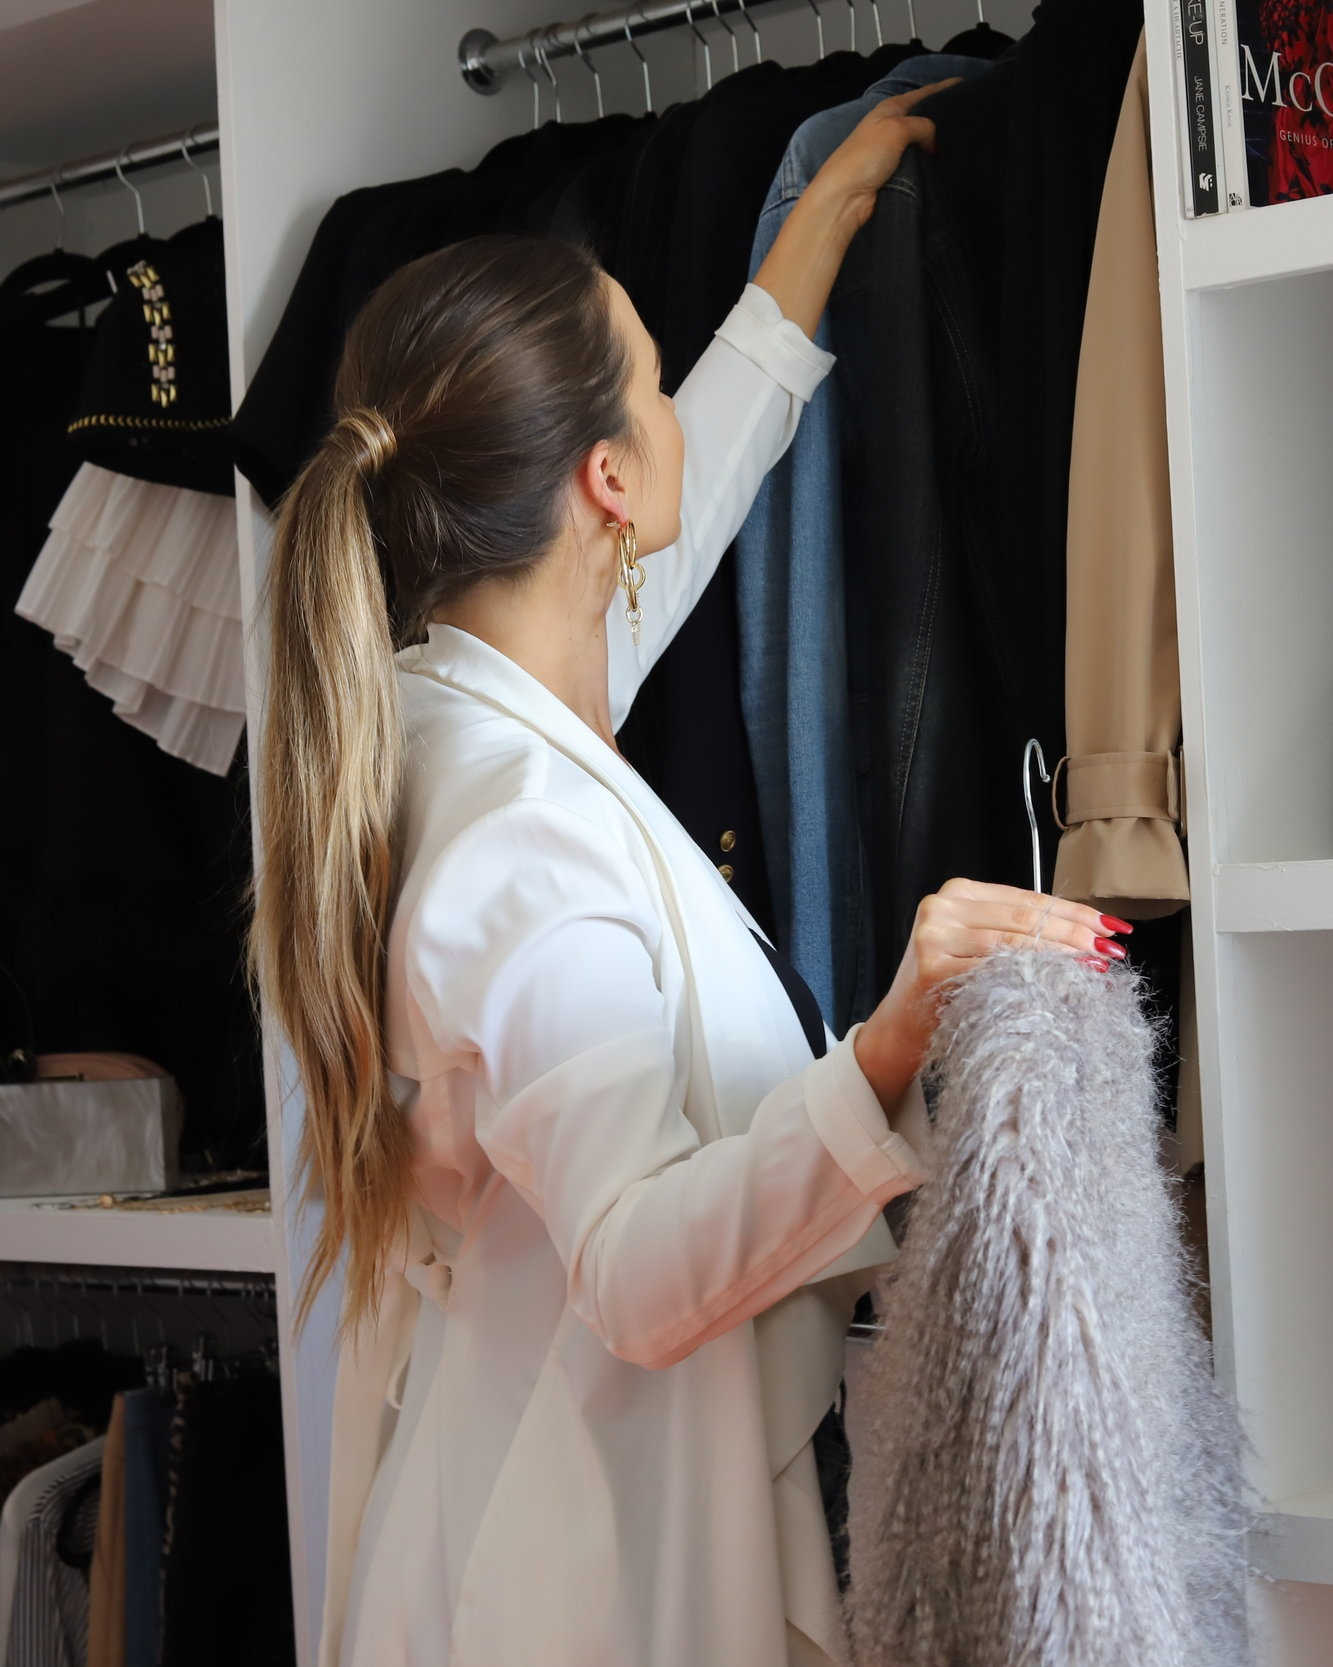 WE DON'T SPEAK ENOUGH ABOUT HOW TO CARE FOR OUR CLOTHES. IMAGE | AQUA ANGEL PRODUCTIONS